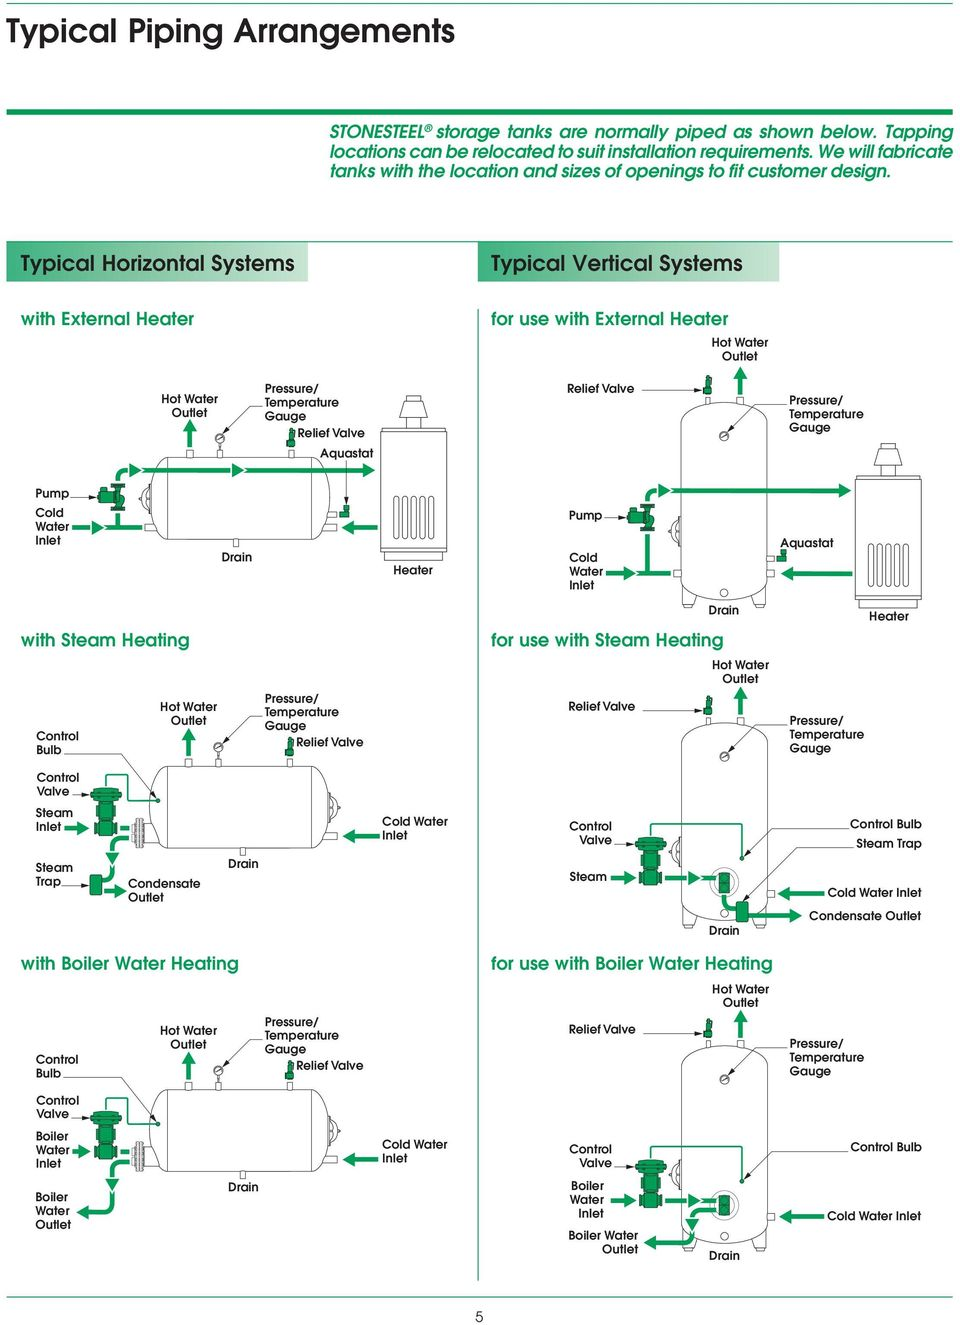 Typical Horizontal Systems Typical Vertical Systems with External Heater for use with External Heater Hot Water Hot Water Pressure/ Temperature quastat Pressure/ Temperature Pump Cold Water Heater